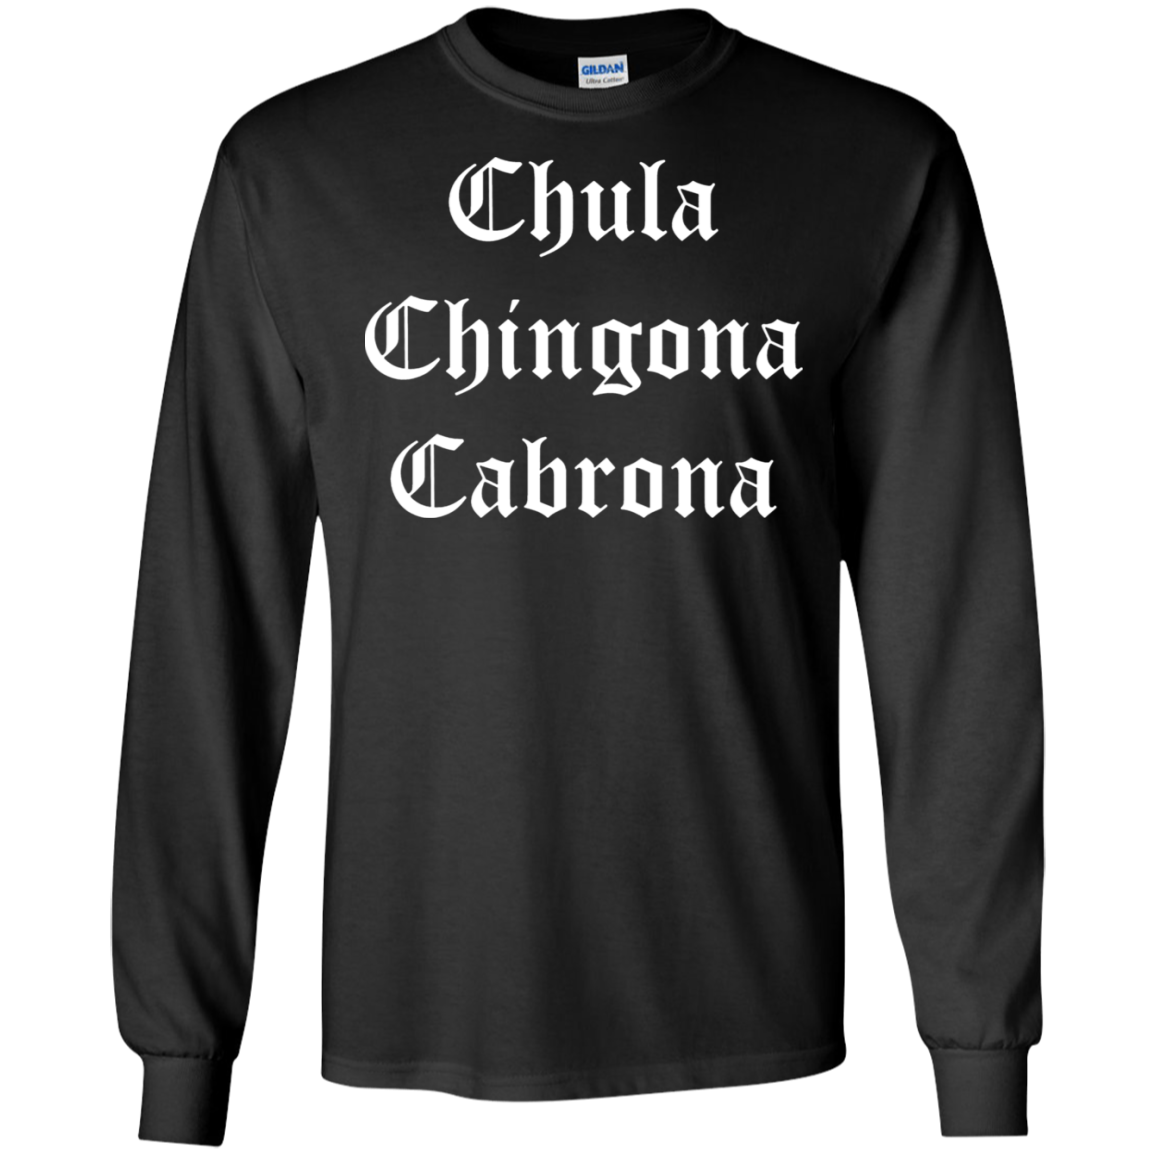 Chula Chingona Cabrona Long T Shirt